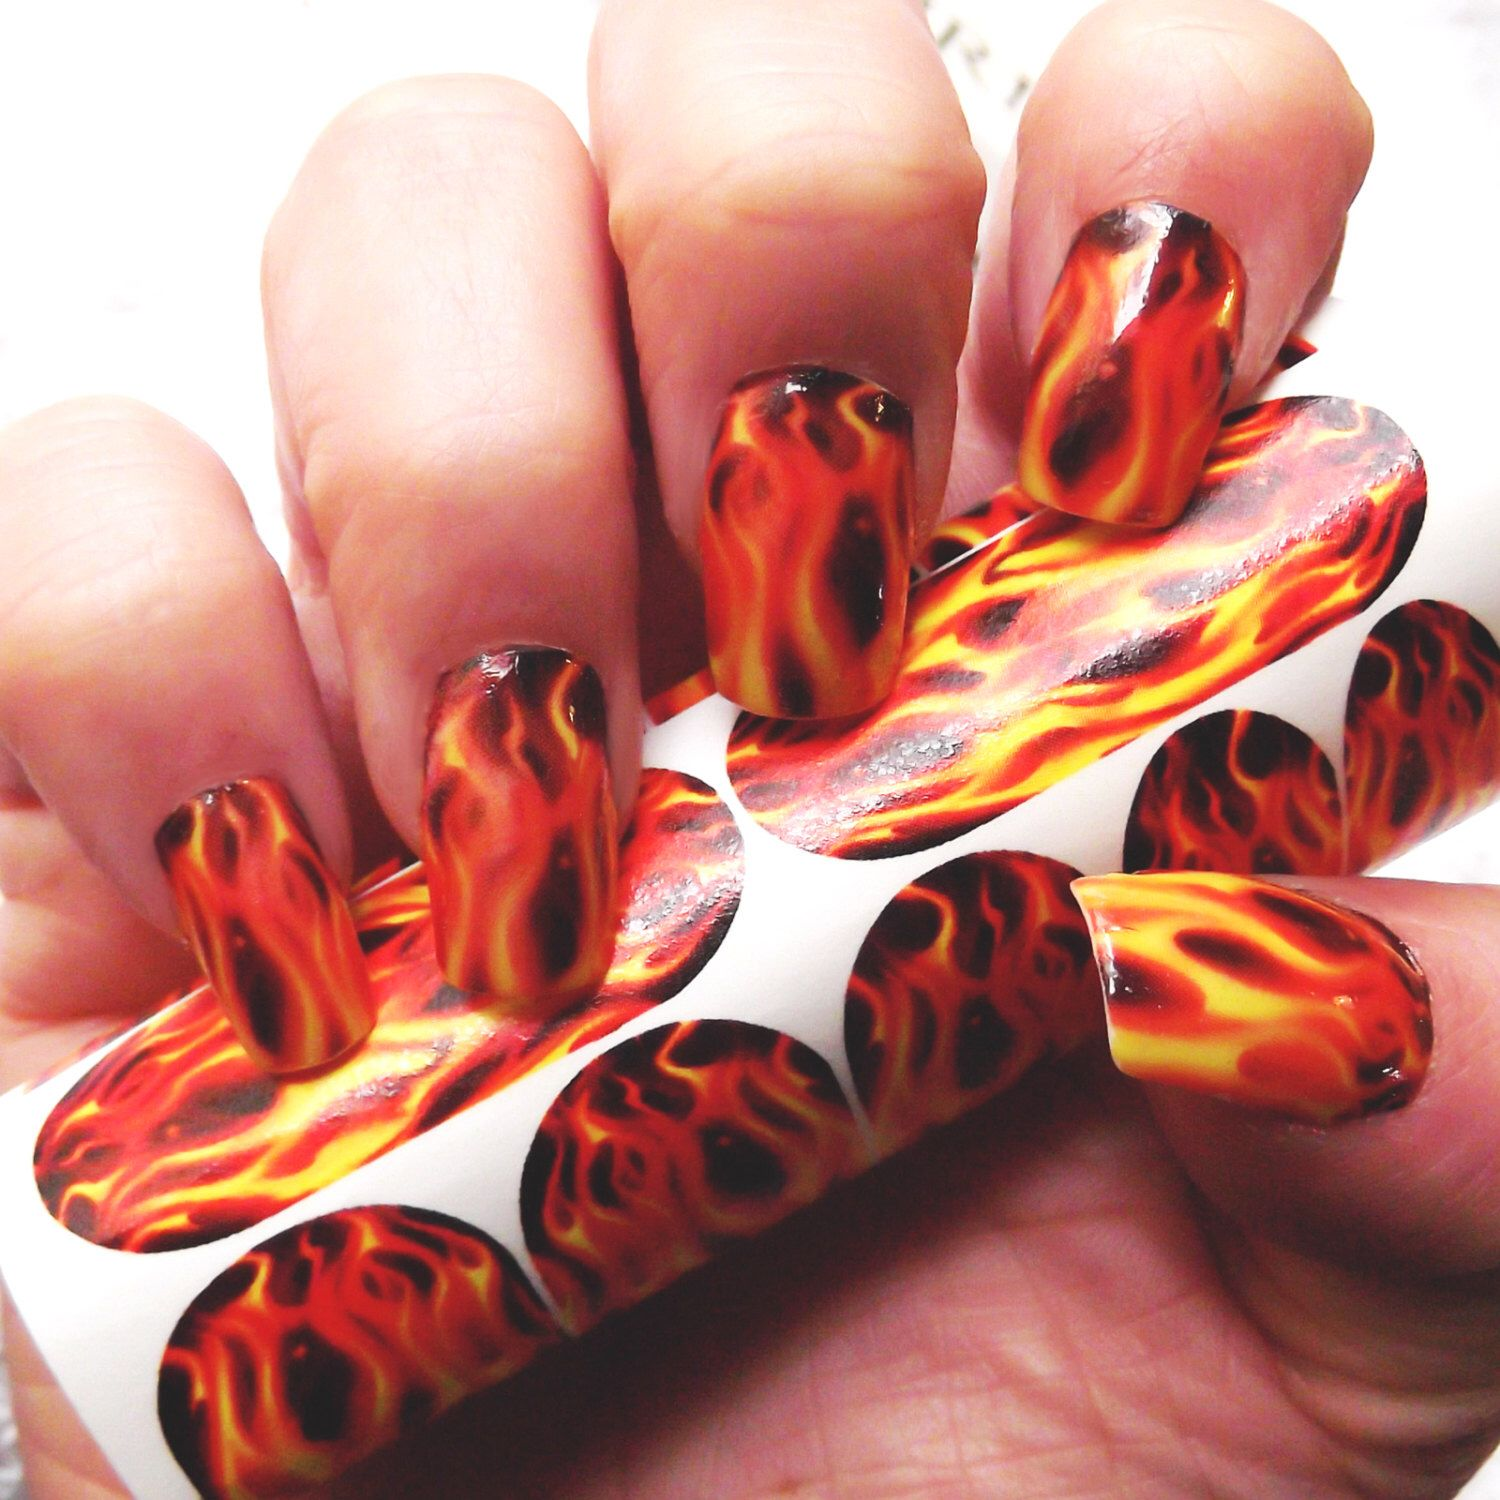 REAL FLAME Nail Art (FMR) For Long Nails Hunger Games